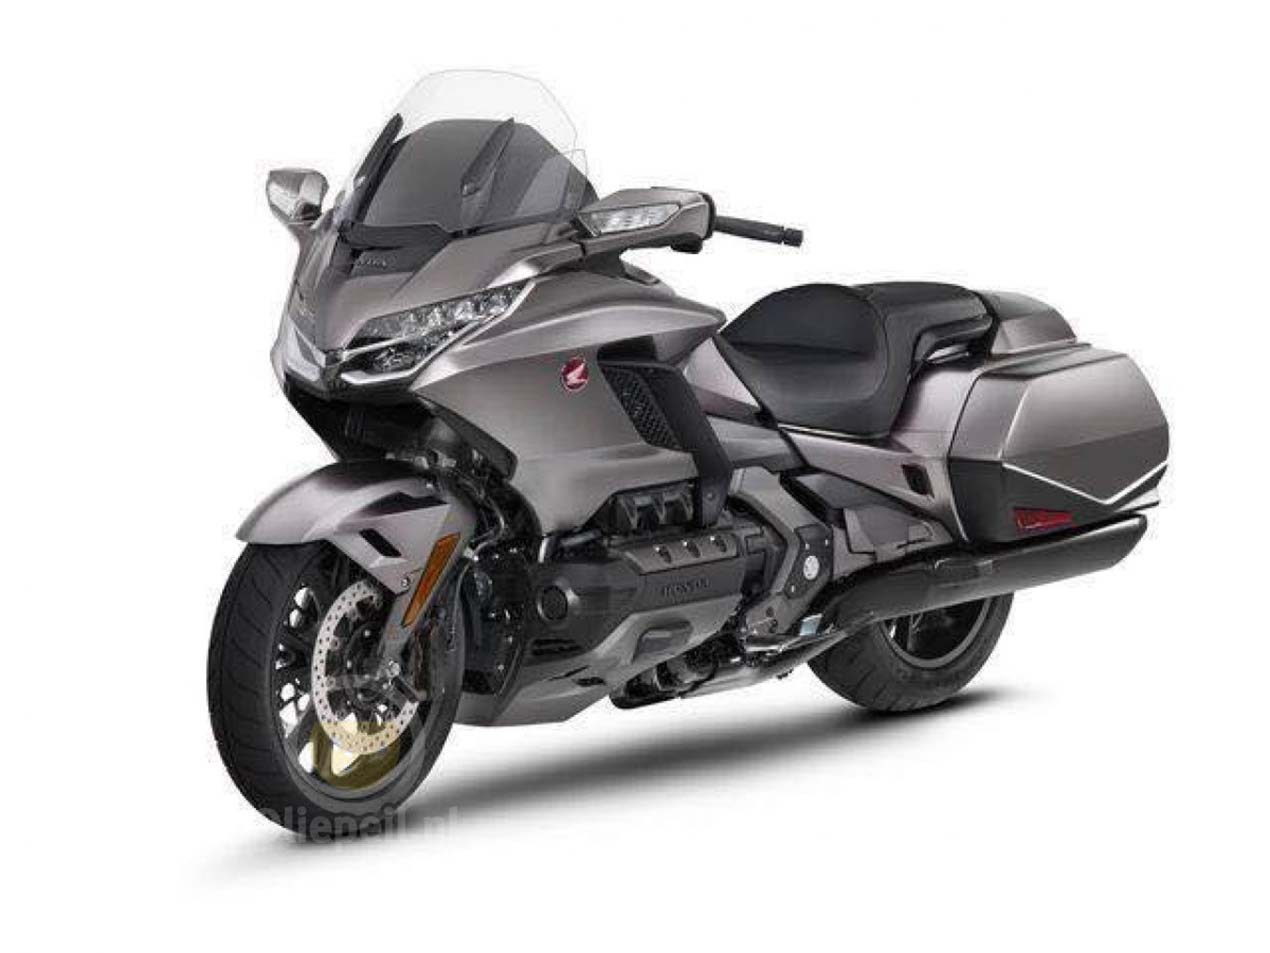 Bike Honda Model New Service Centre Information And Motorcycle 2018 Motorcycles Lineup Reviews Specs